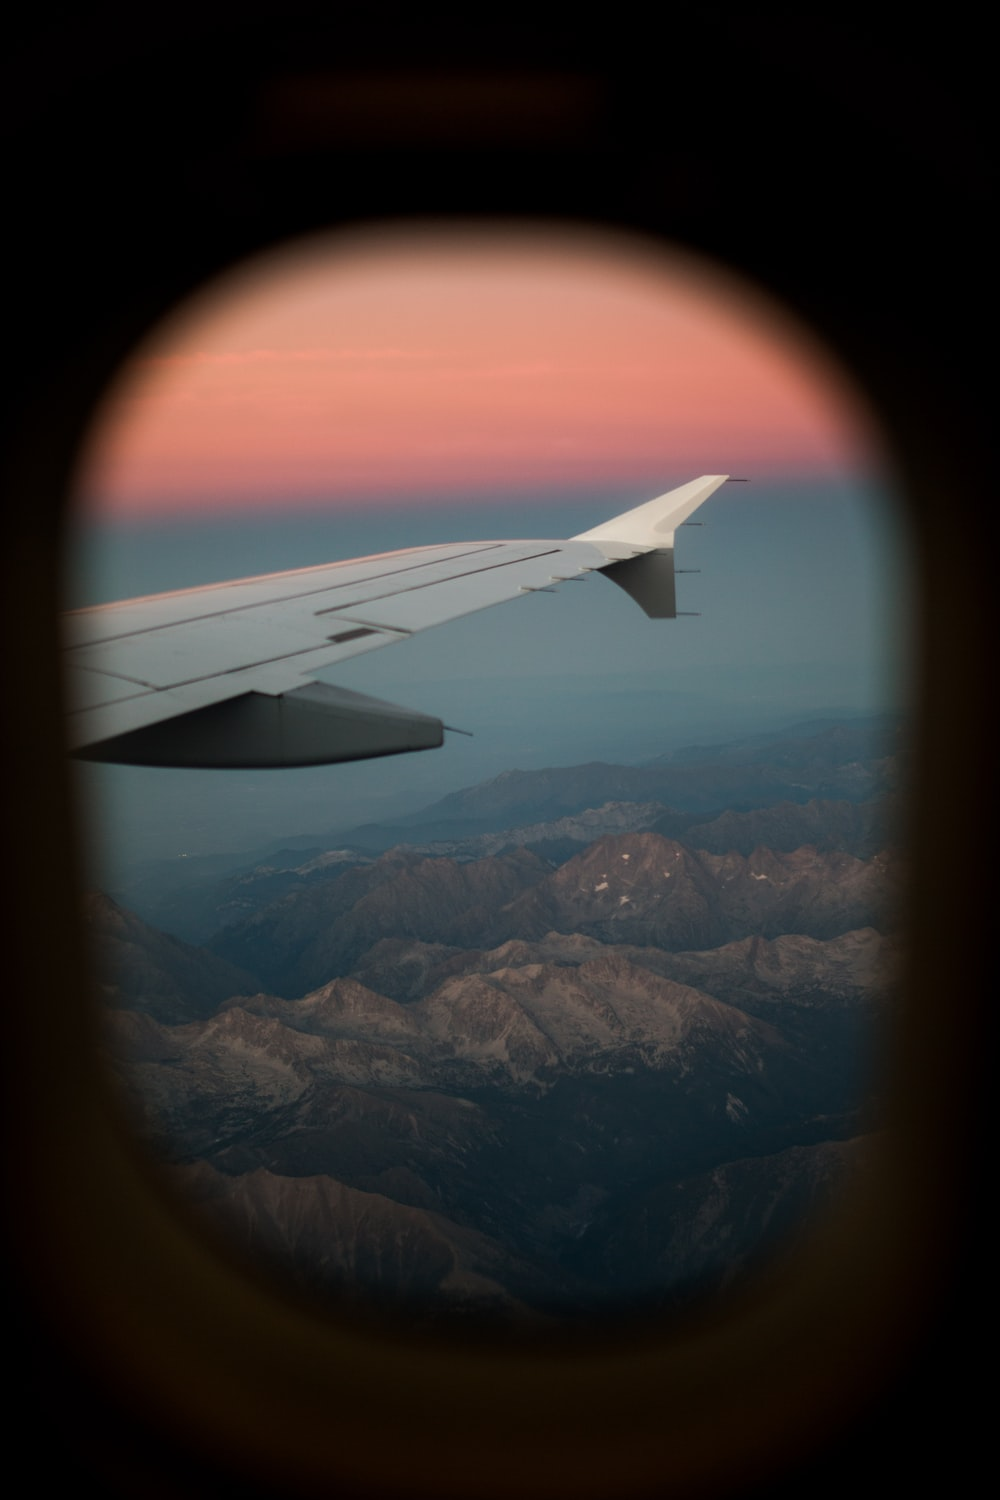 airplane window view of mountains during daytime